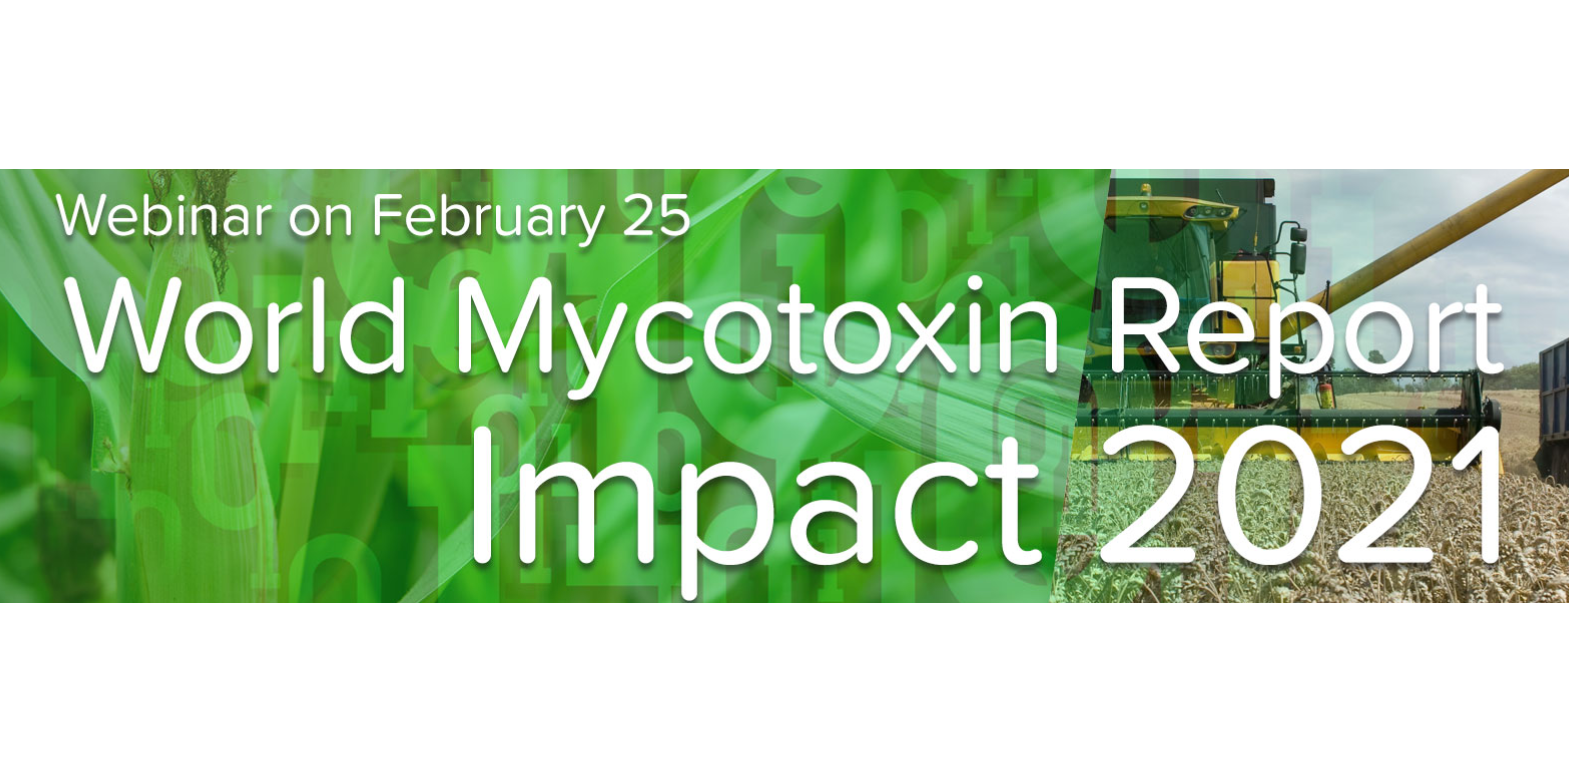 World Mycotoxin Report: Impact 2021, an exclusive webinar by BIOMIN and Romer Labs